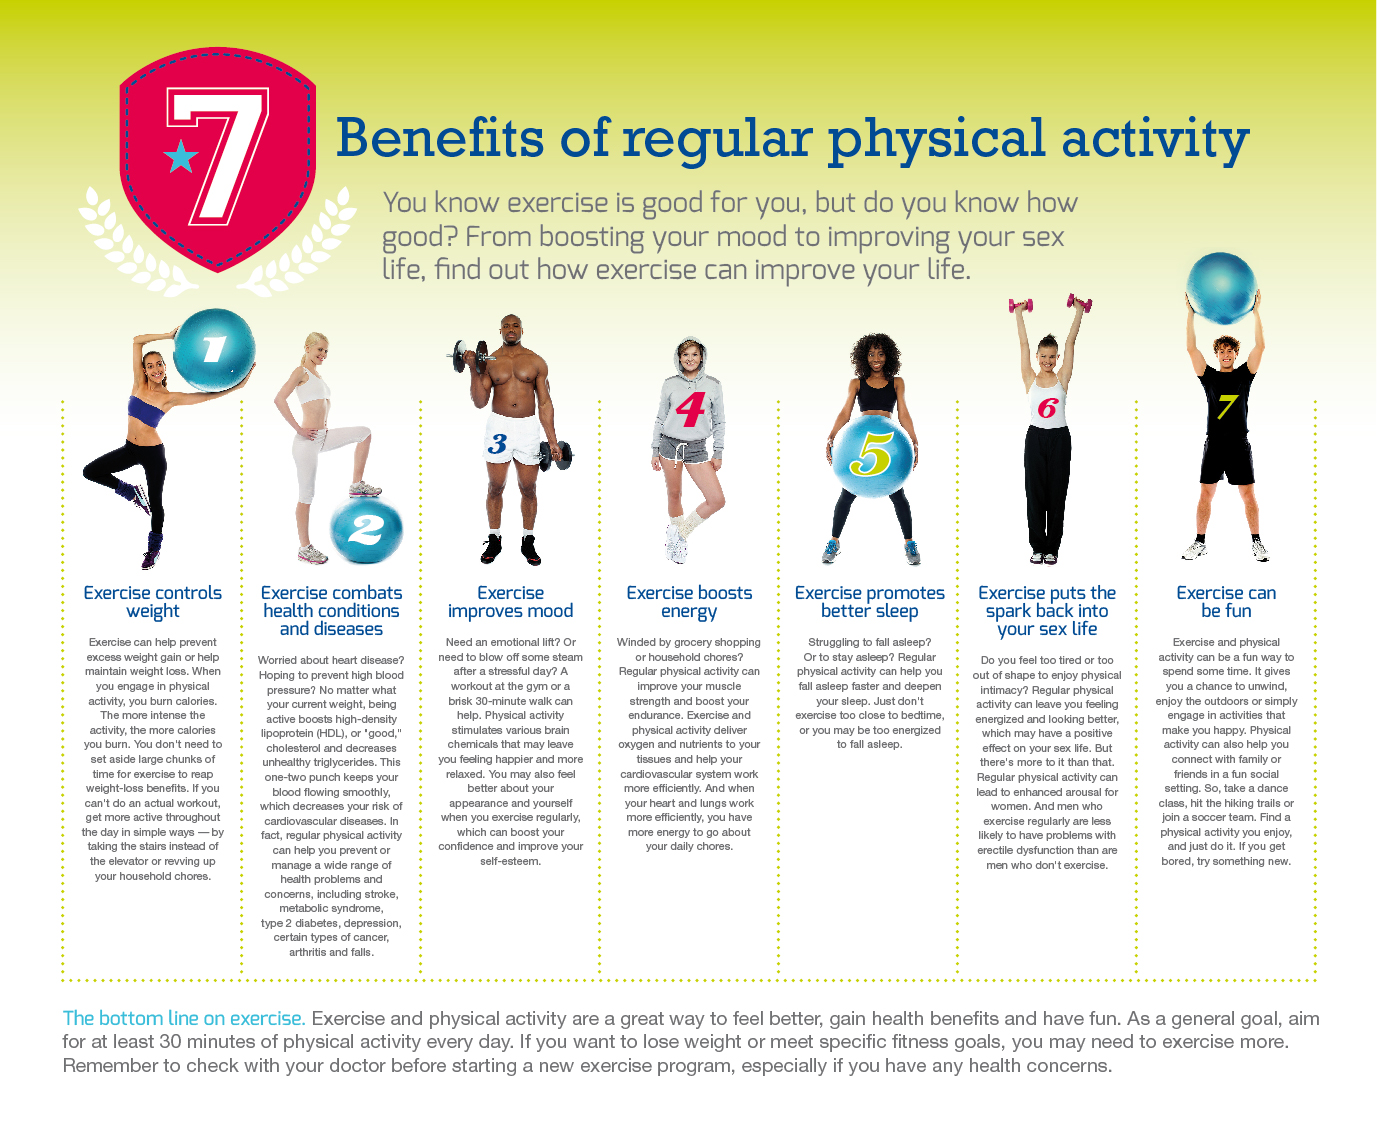 009 Fedhealth Exercise Infographic Jpg Essay Example On Sleep And Good Fascinating Health Full